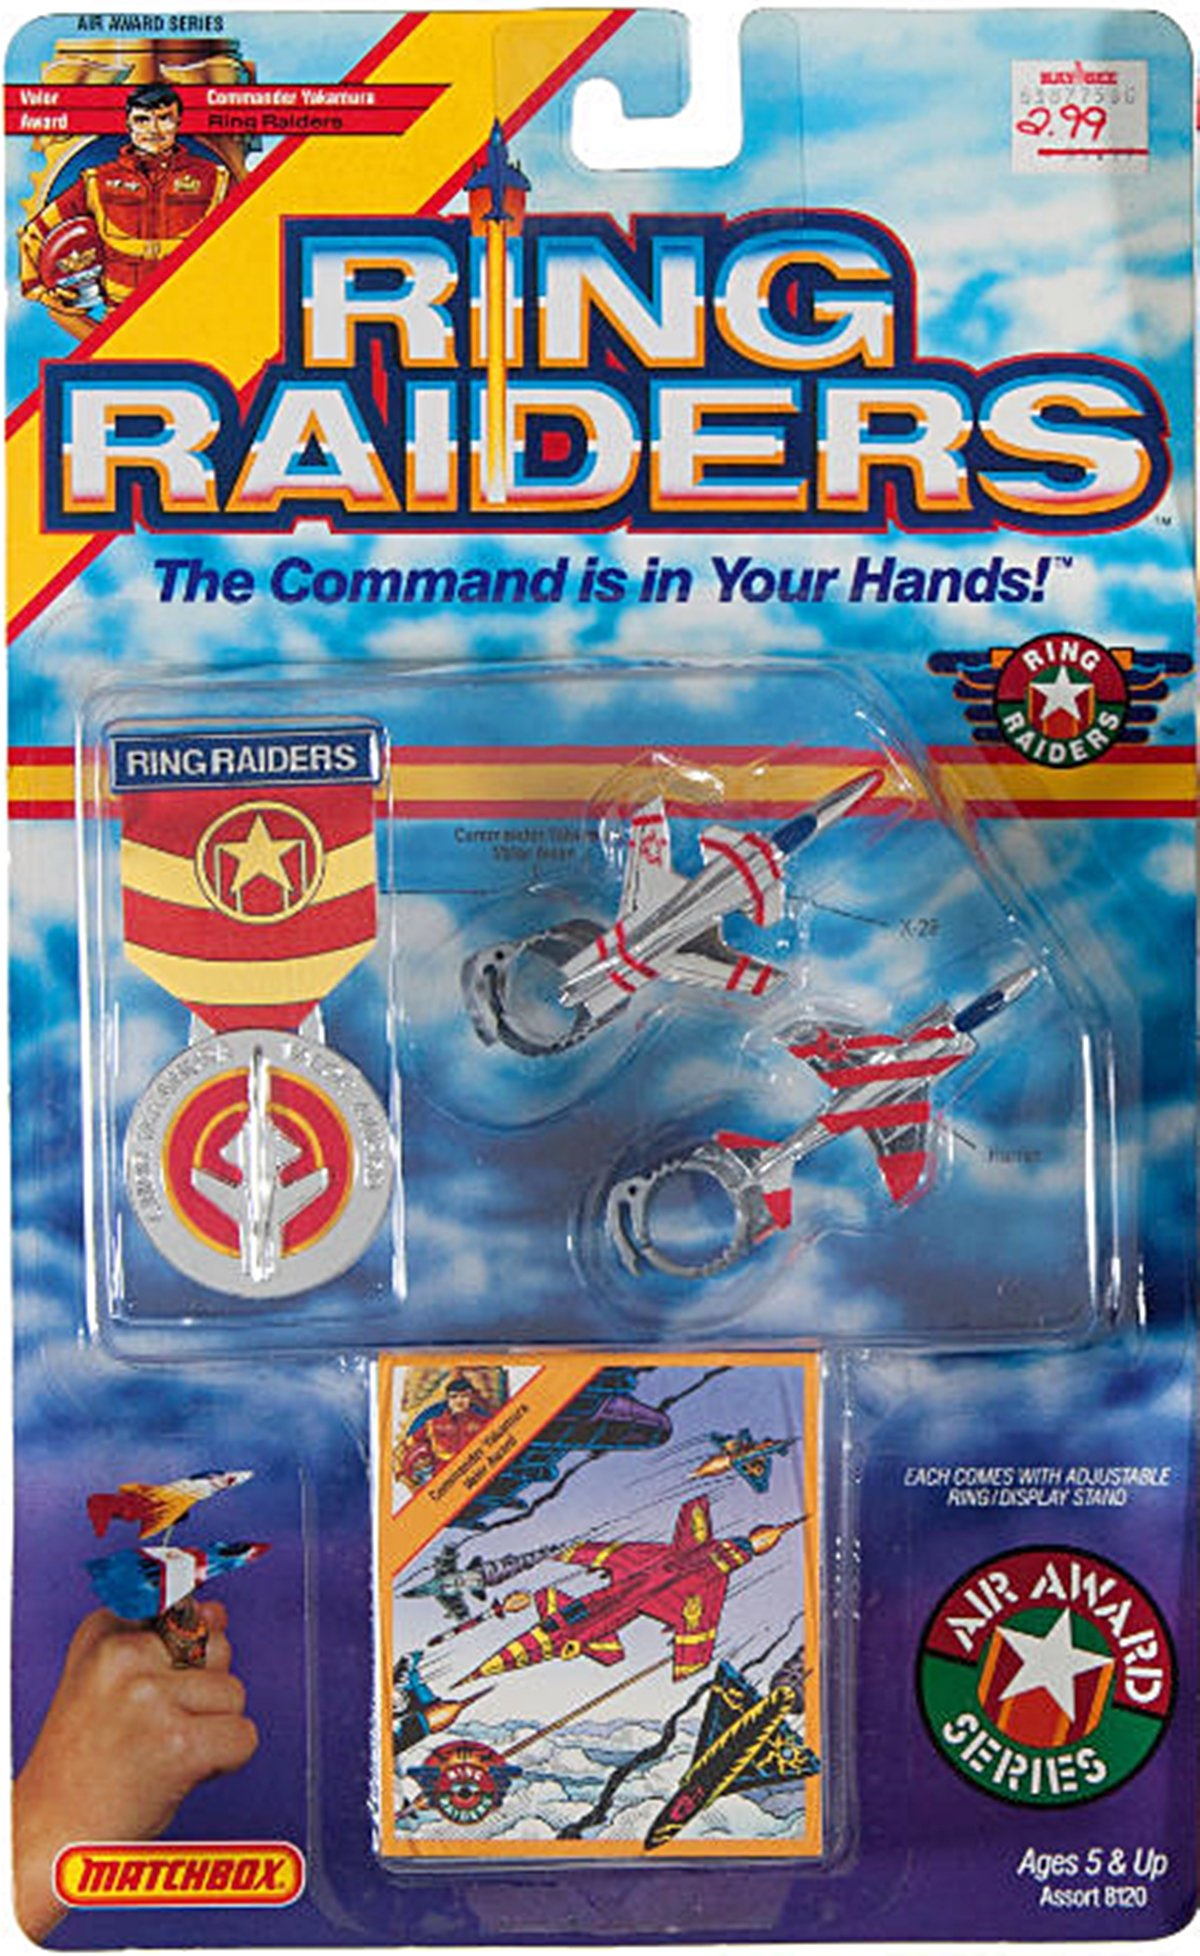 12 7 16 Toys You've Probably Completely Forgotten About